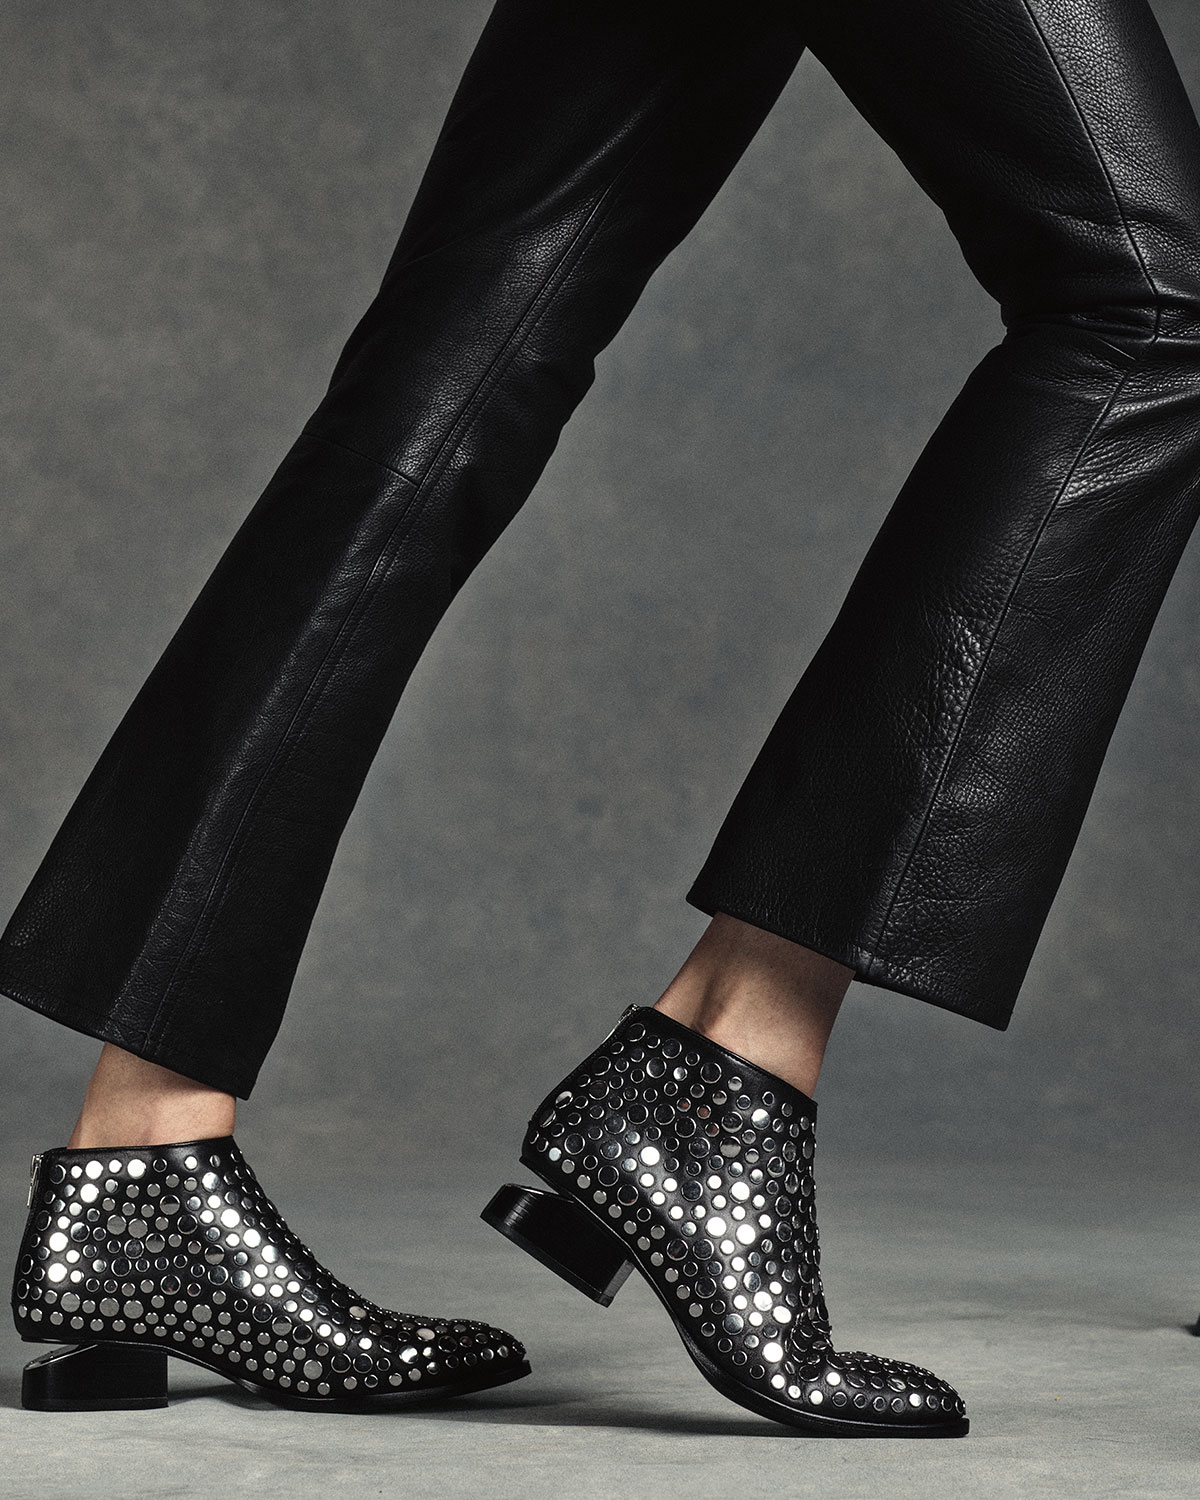 Alexander Wang Studded Kori Boots buy cheap 2015 100% authentic for sale free shipping 2014 huge surprise online 1doXwRb